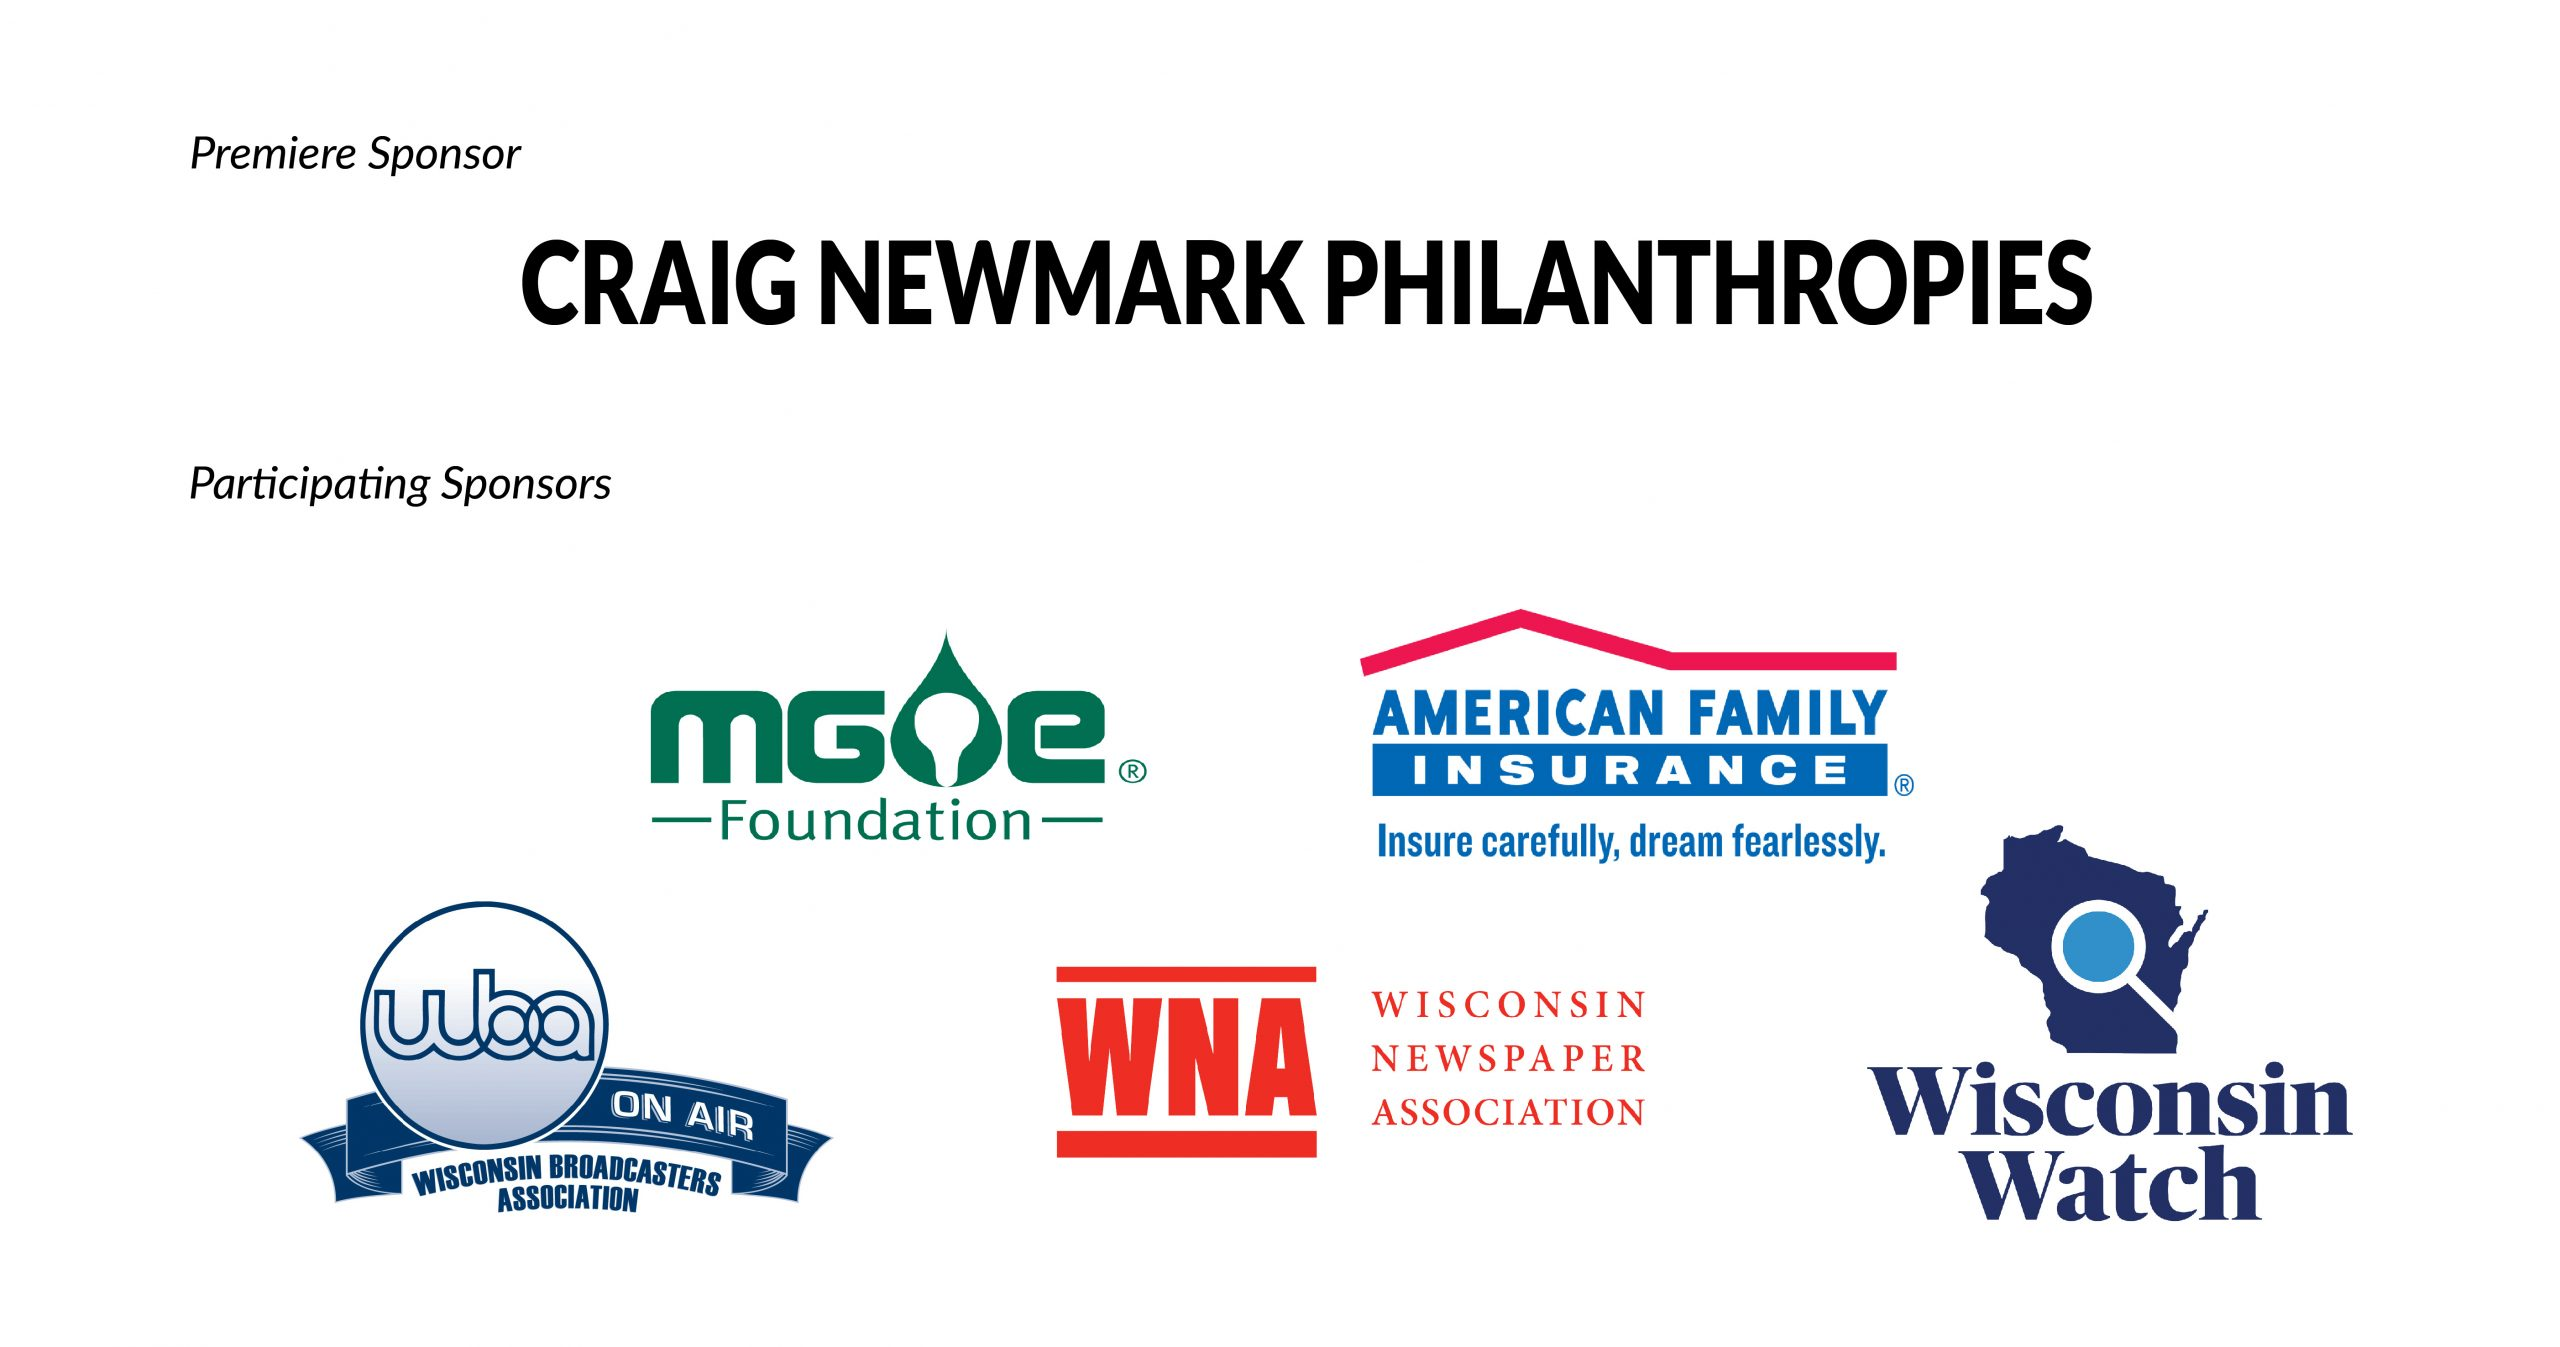 Presenting sponsor: Craig Newmark Philanthropies; Participating Sponsors: MG&E Foundation, American Family Insurance, Wisconsin Broadcasters Association, Wisconsin Newspaper Association, and Wisconsin Watch